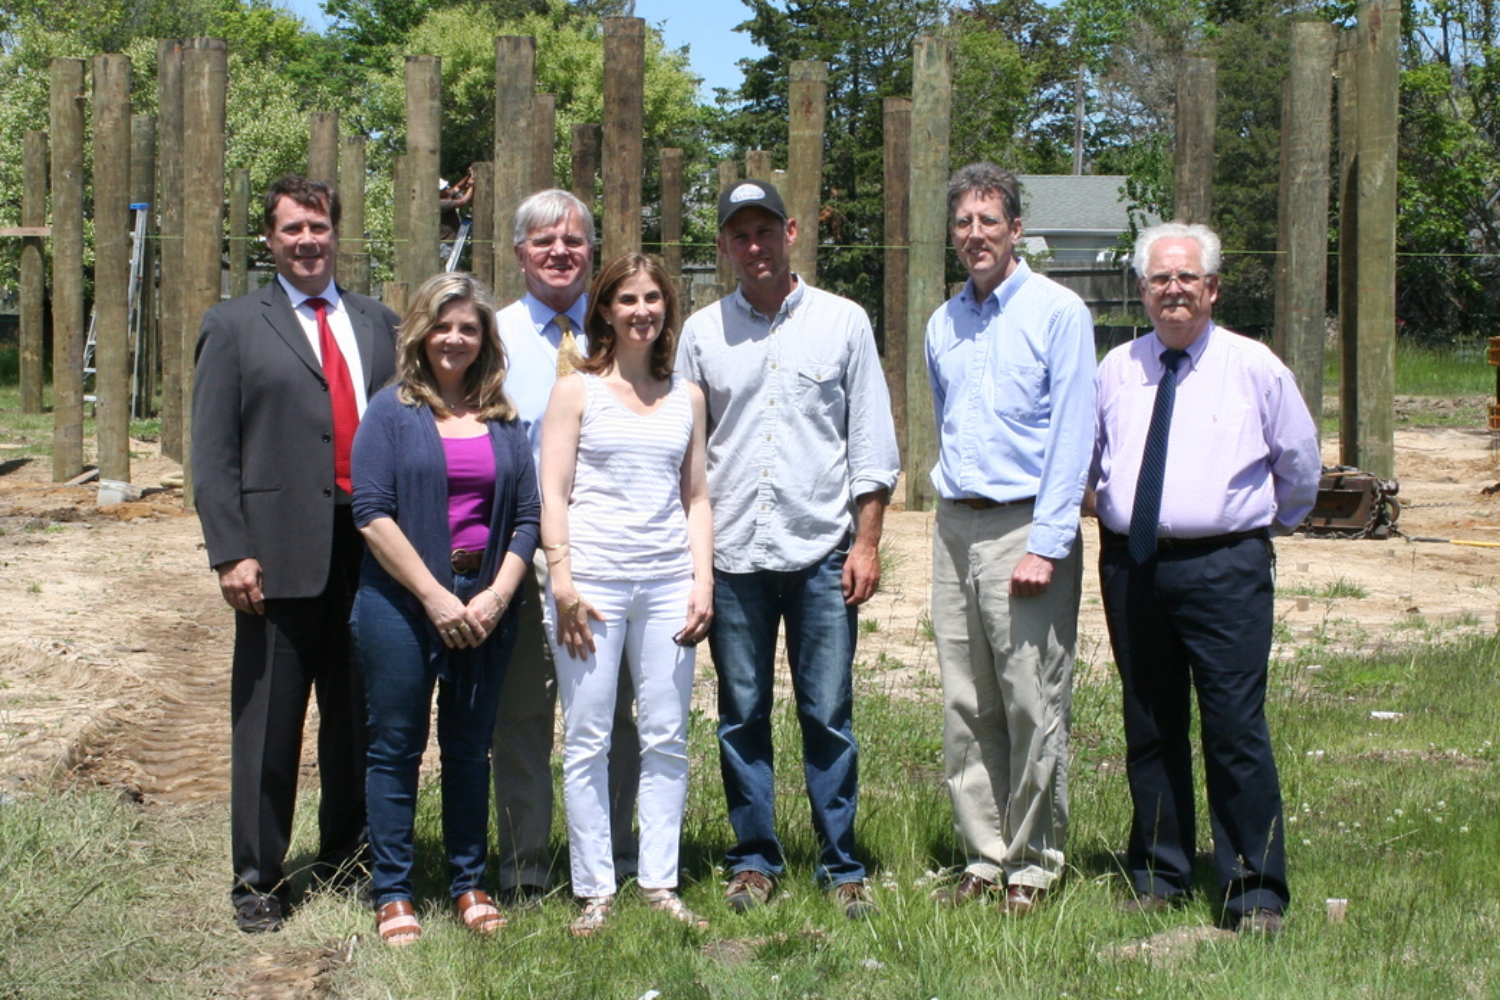 L to R: Greg Blower, Office of New York State Senator Kenneth LaValle; Kathryn Cannon, LEED AP Homes and SGH Project Team Member; New York State Assemblyman Fred W. Thiele, Jr.; Kim Erle, SGH Project Team Leader; Chris Mensch, General Contractor and SGH Project Team Member; Bill Heine, Architect and SGH Project Team Member; Richard Manning, LEED Green Rater and SGH Verification Team Member.